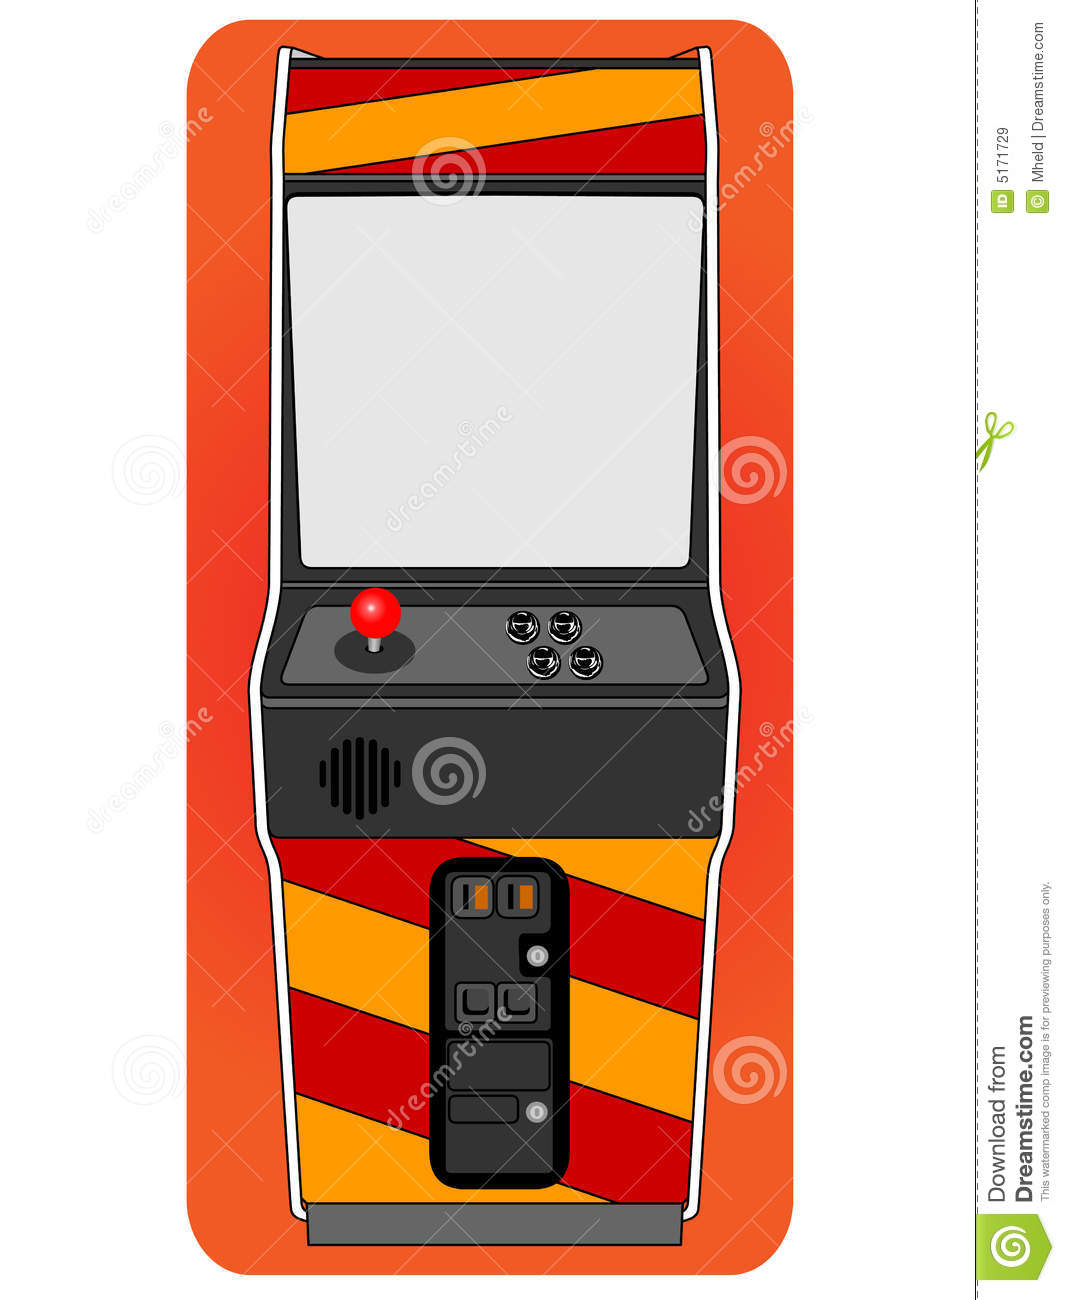 Classic arcade cabinet stock vector. Image of emulator - 5171729